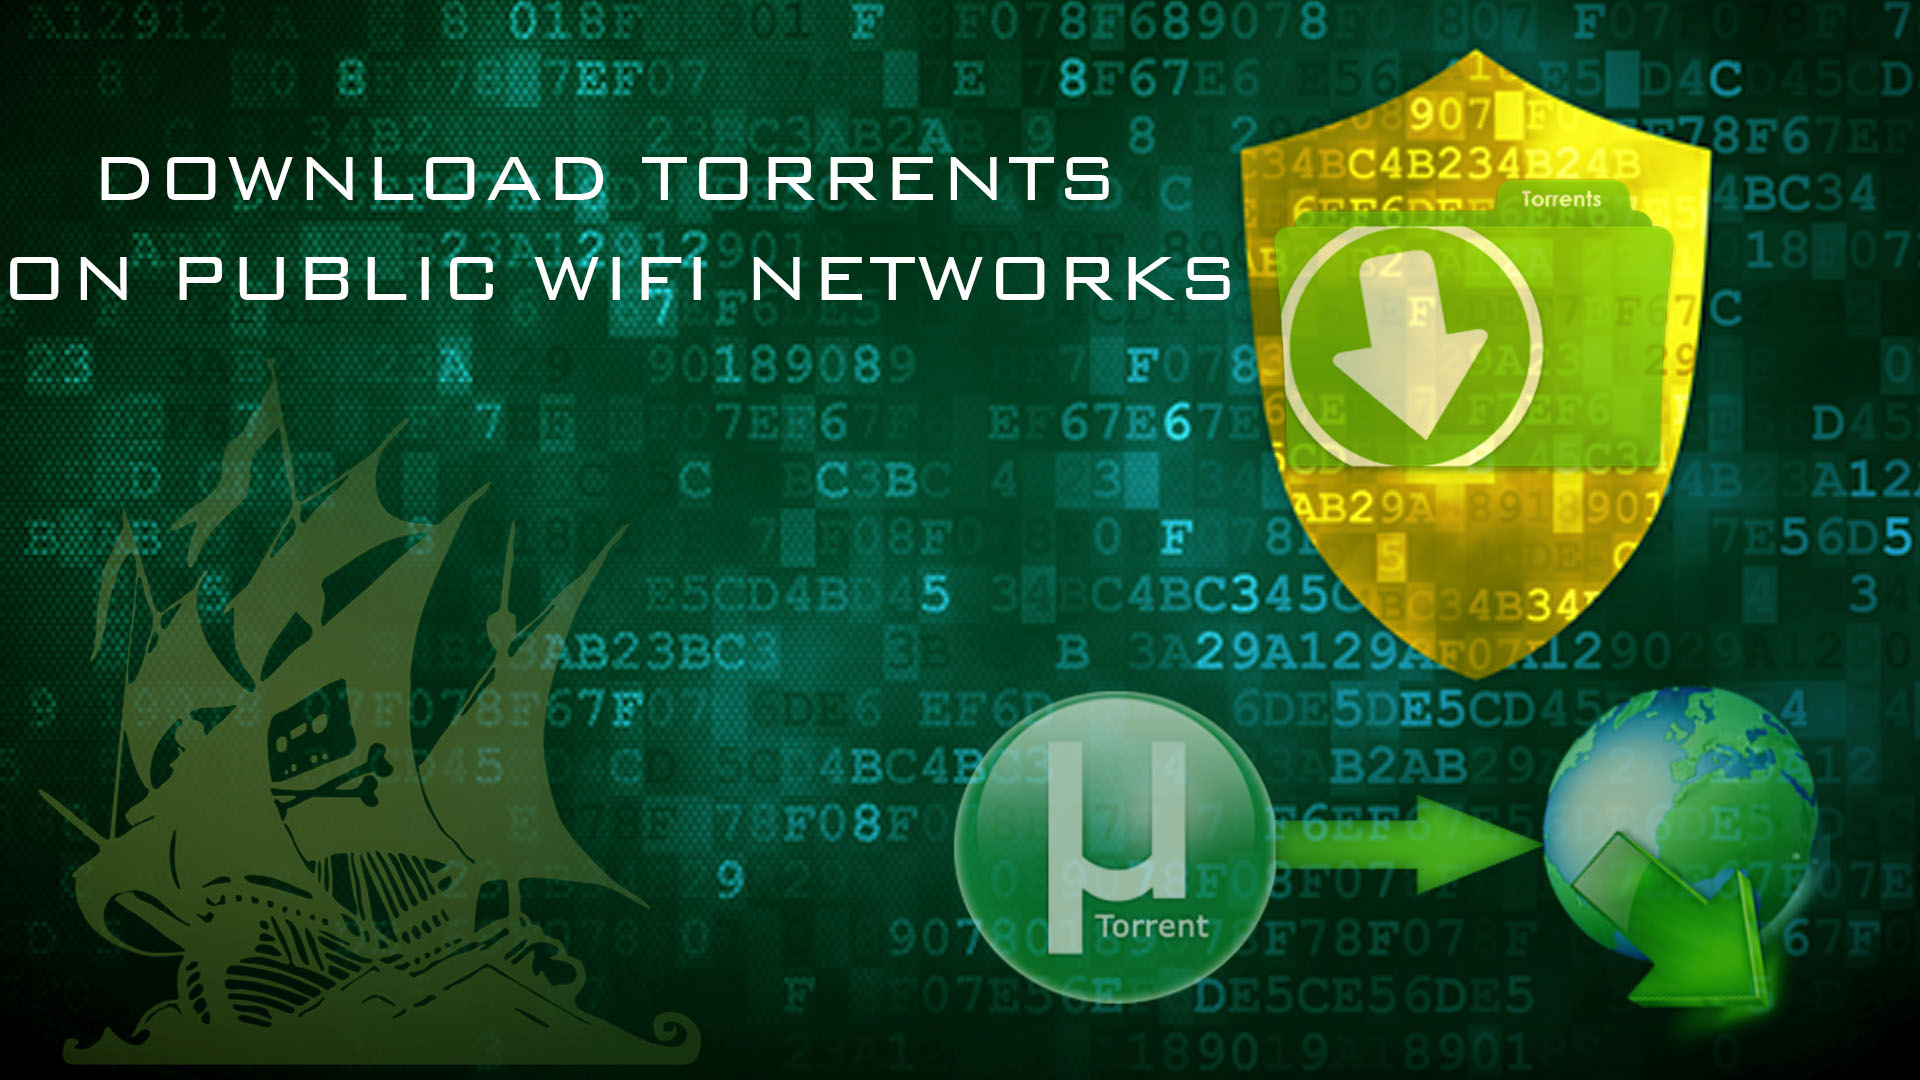 Download Torrents on public WiFi networks